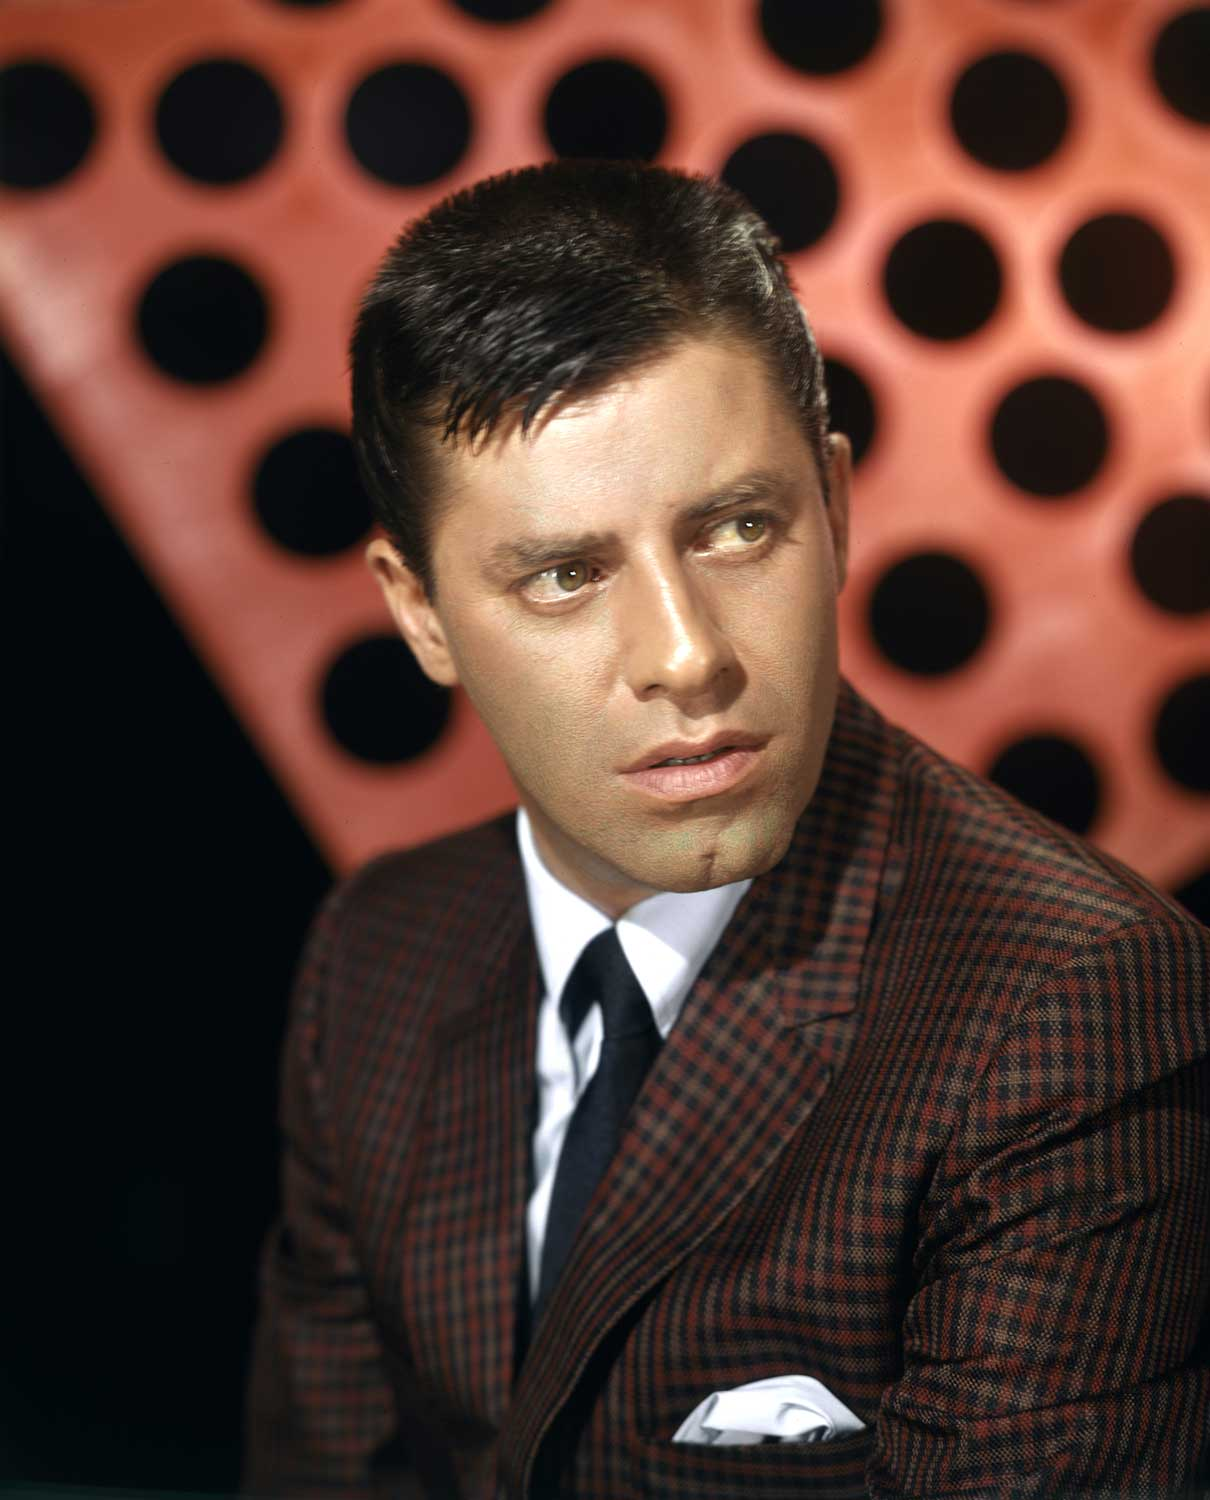 Jerry Lewis has been making movies for the last 66 years